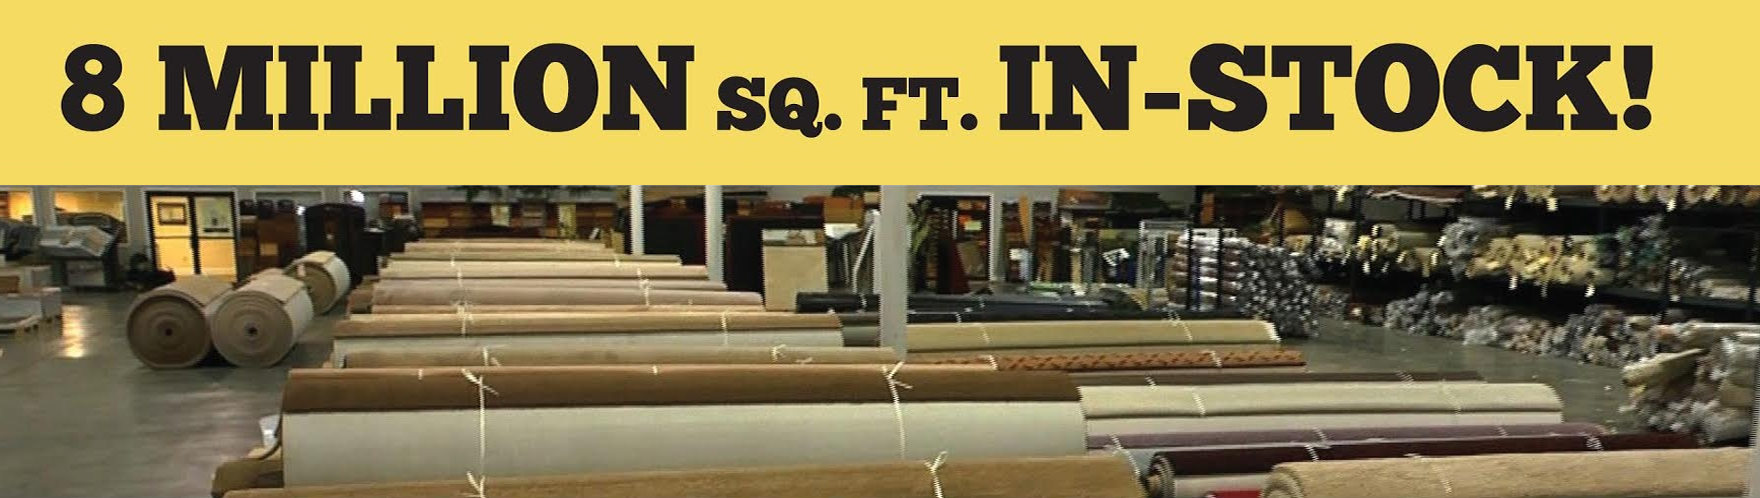 Over 8 Million Sq Ft of Floor Covering In-Stock